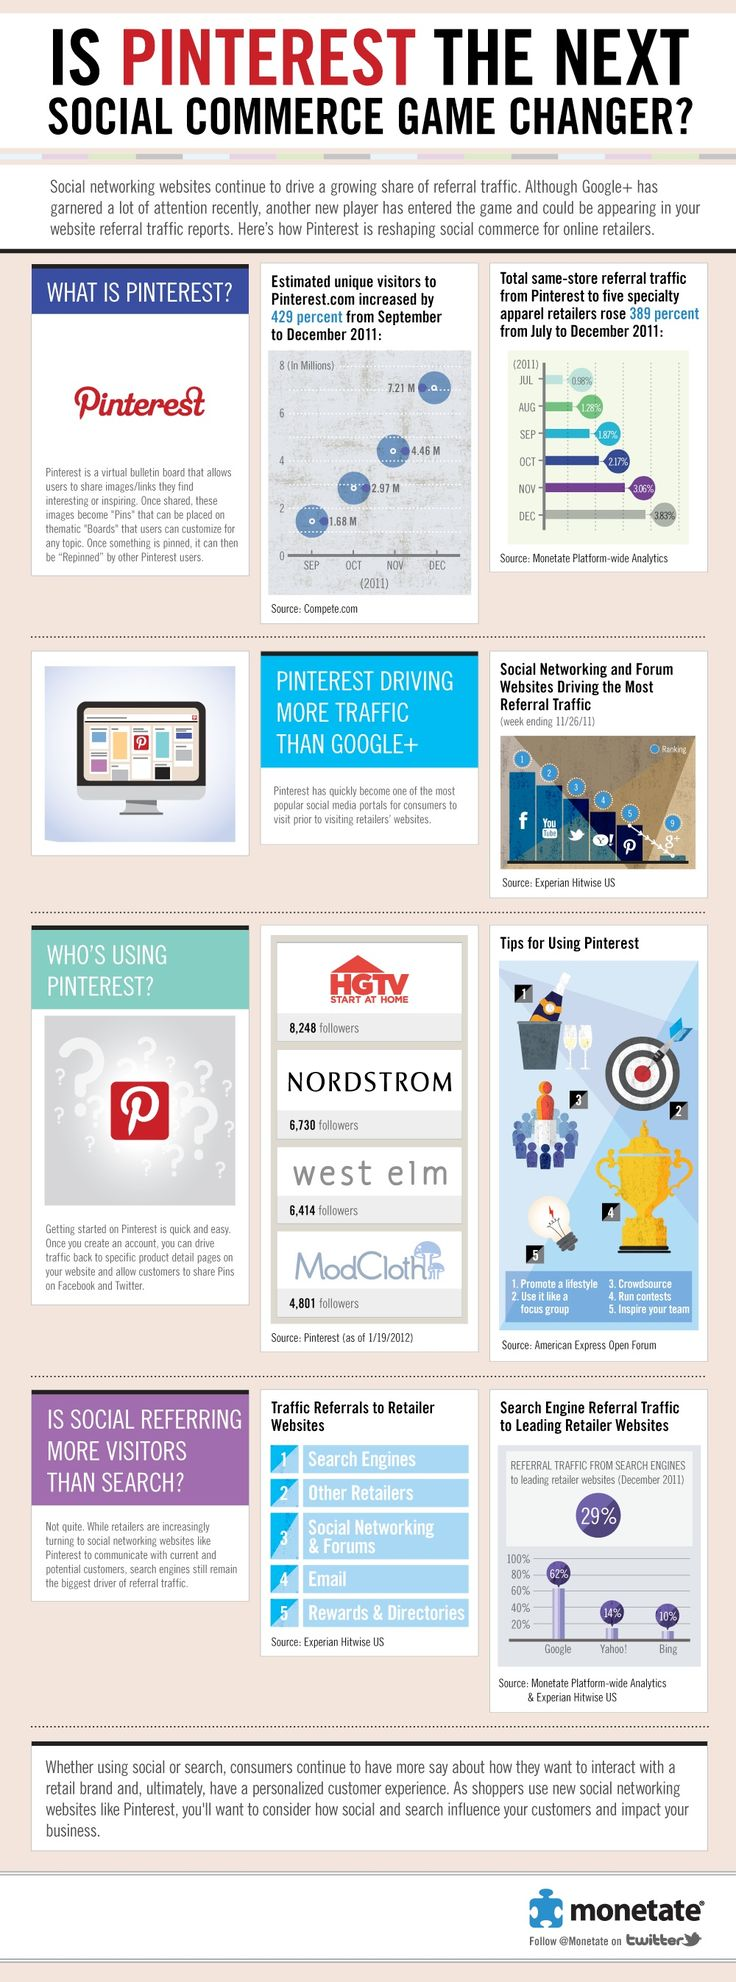 An infographic about Pinterest's growth, pinned on Pinterest. How meta!